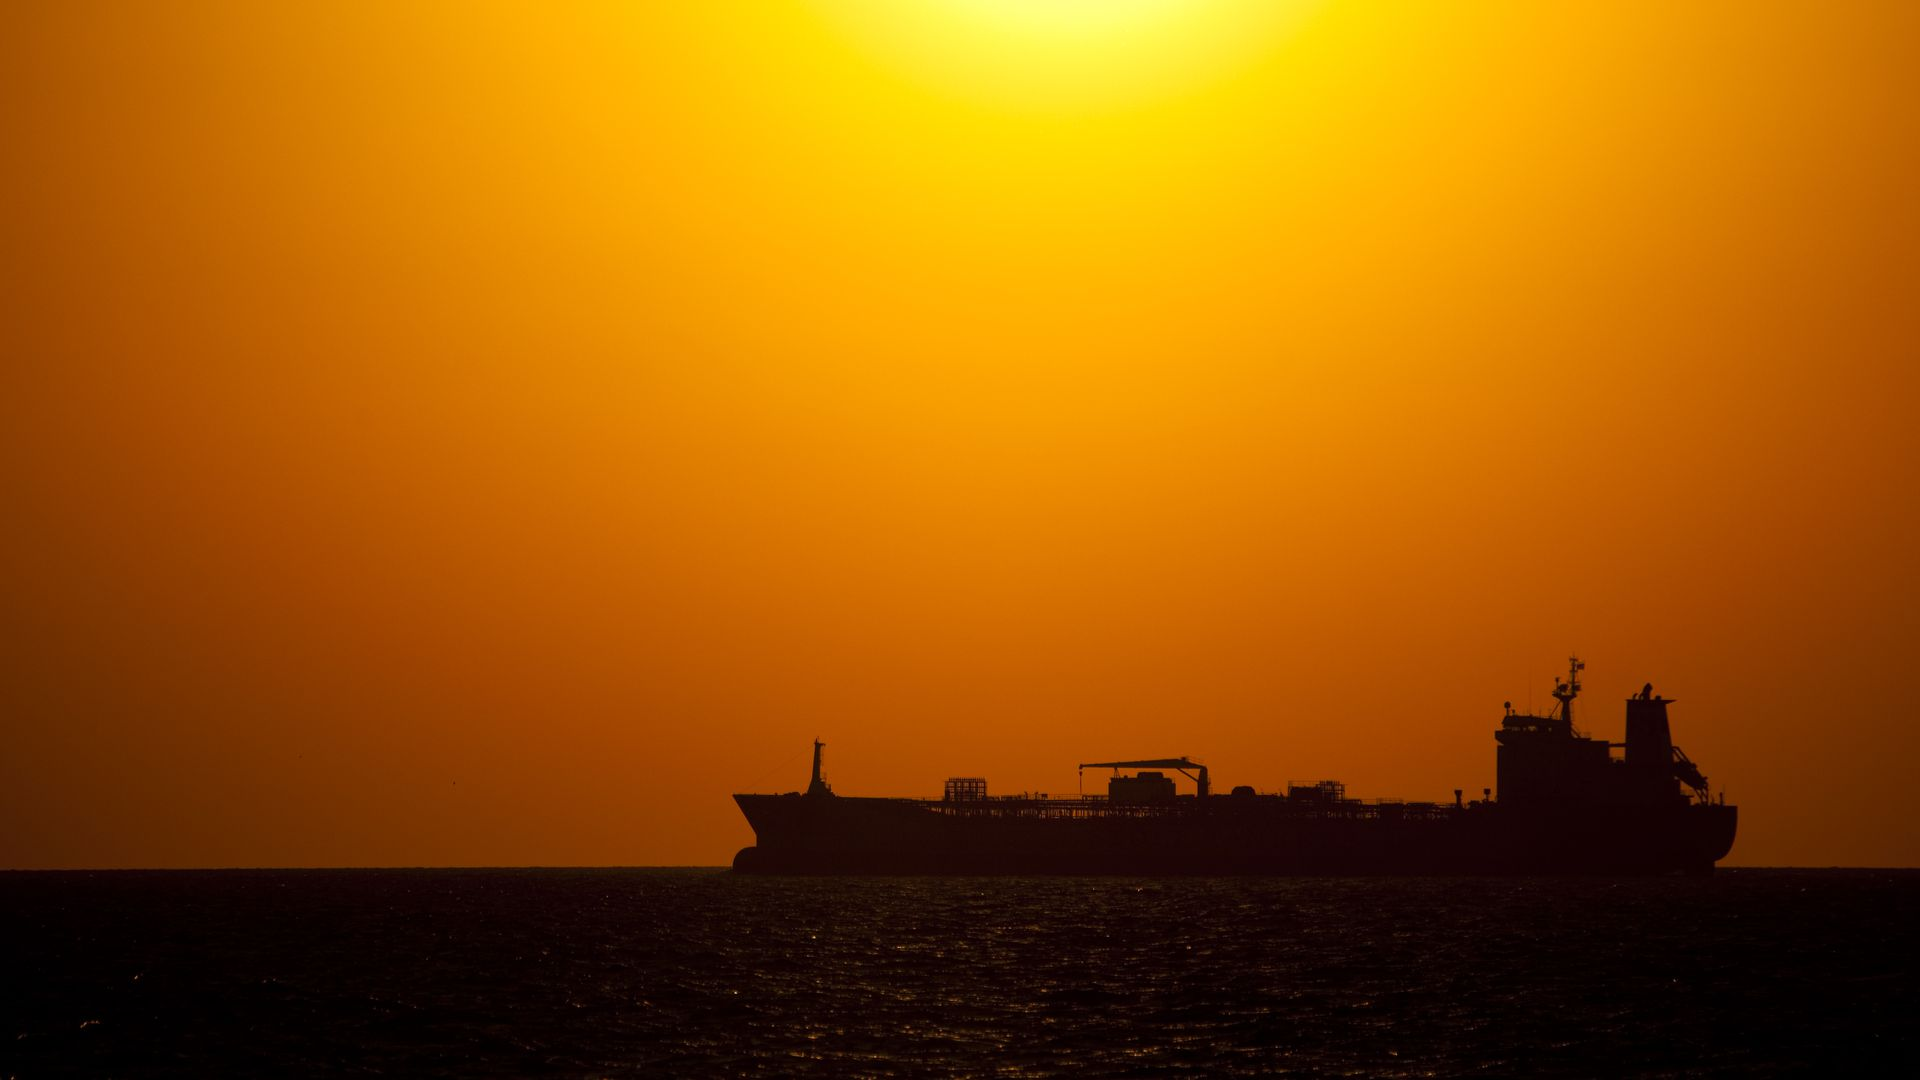 Oil tanker on Gulf of Mexico